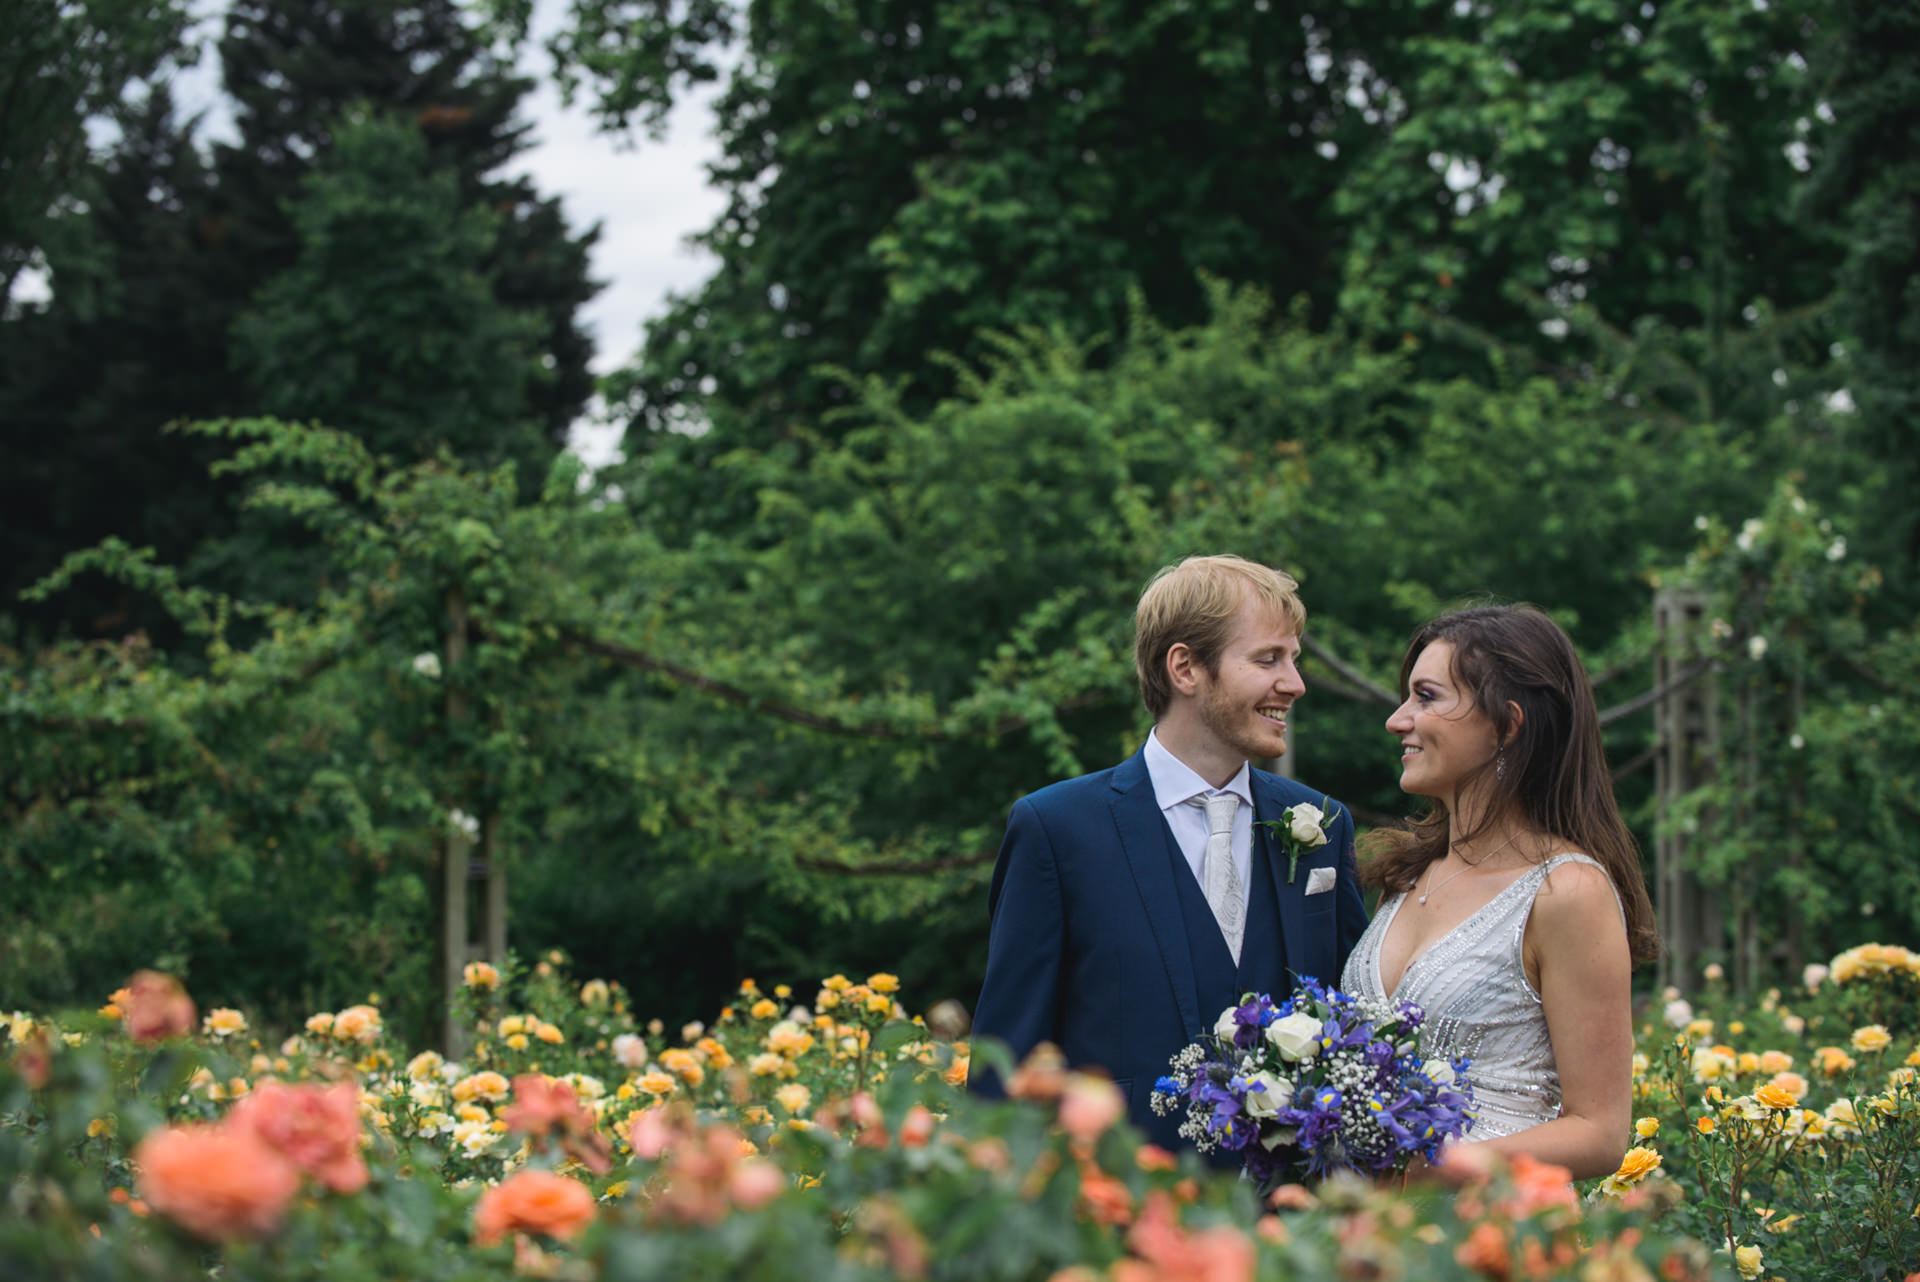 Regents park London wedding couple portrait